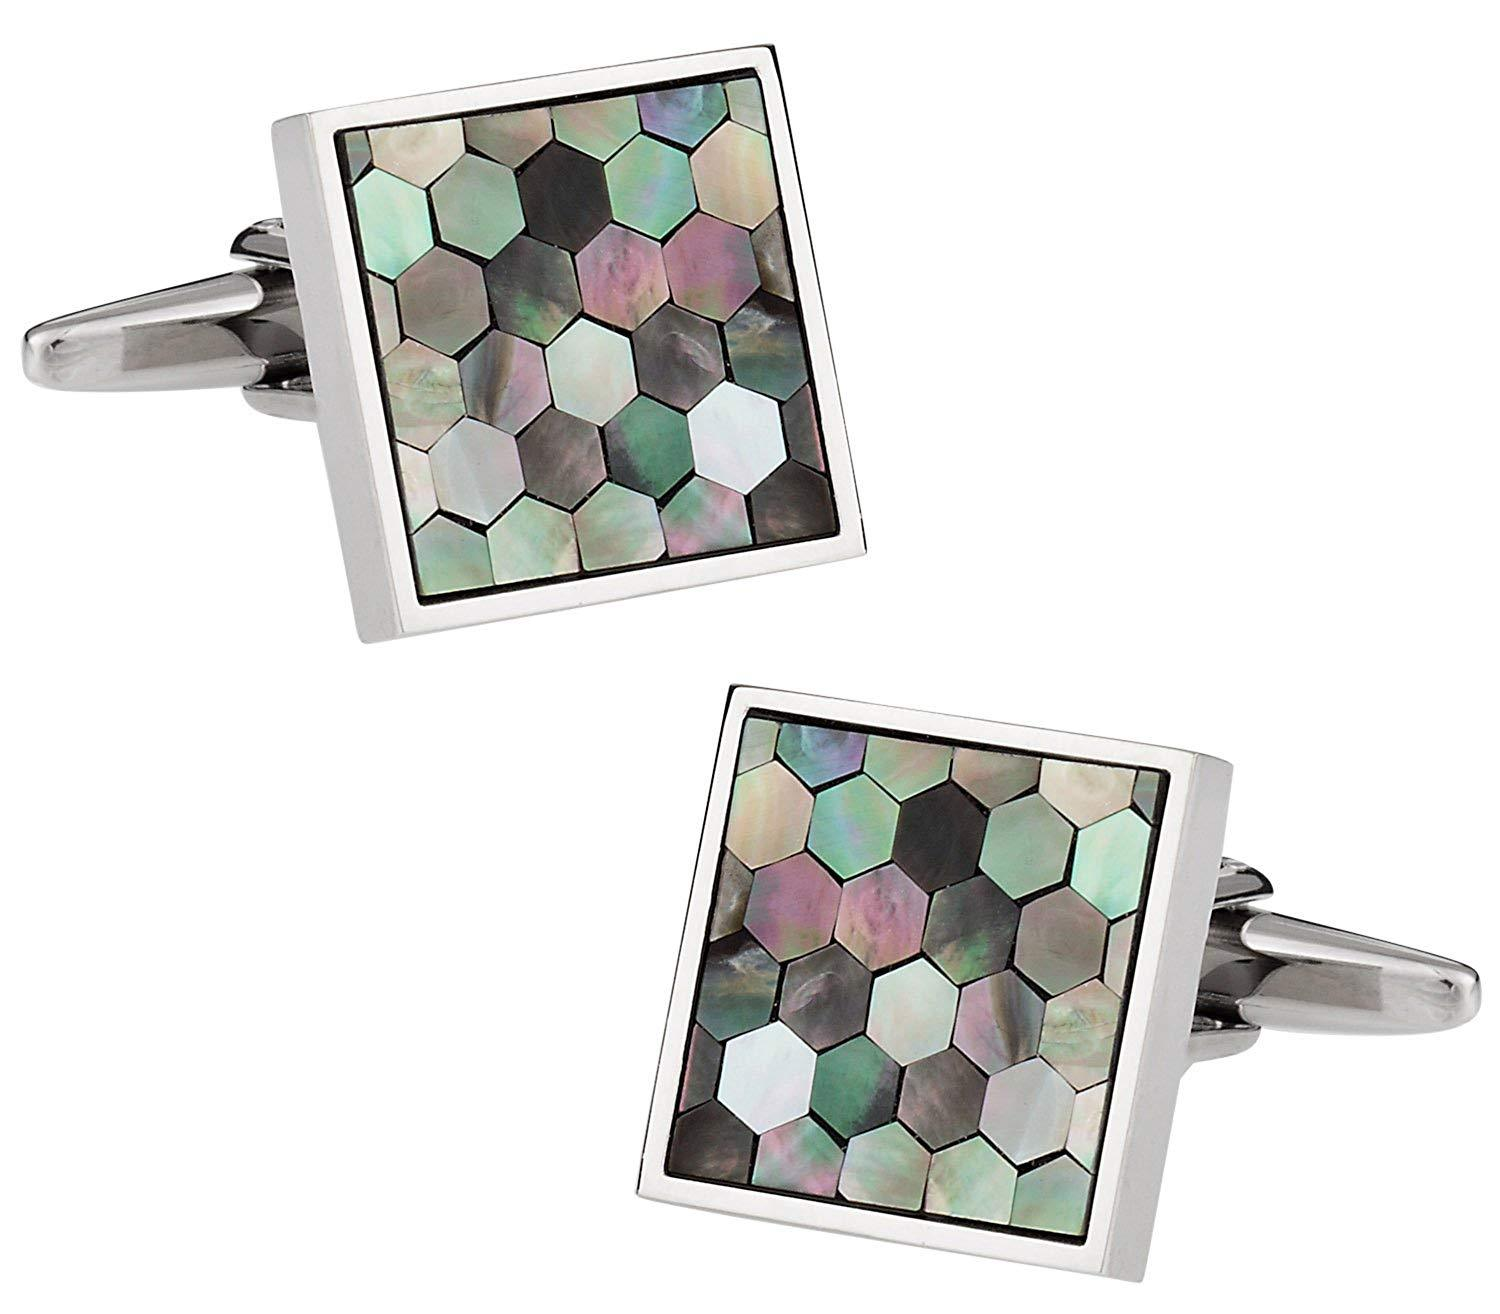 Cuff-Daddy Smokey Mother of Pearl Honeycomb Cufflinks with Presentation Box